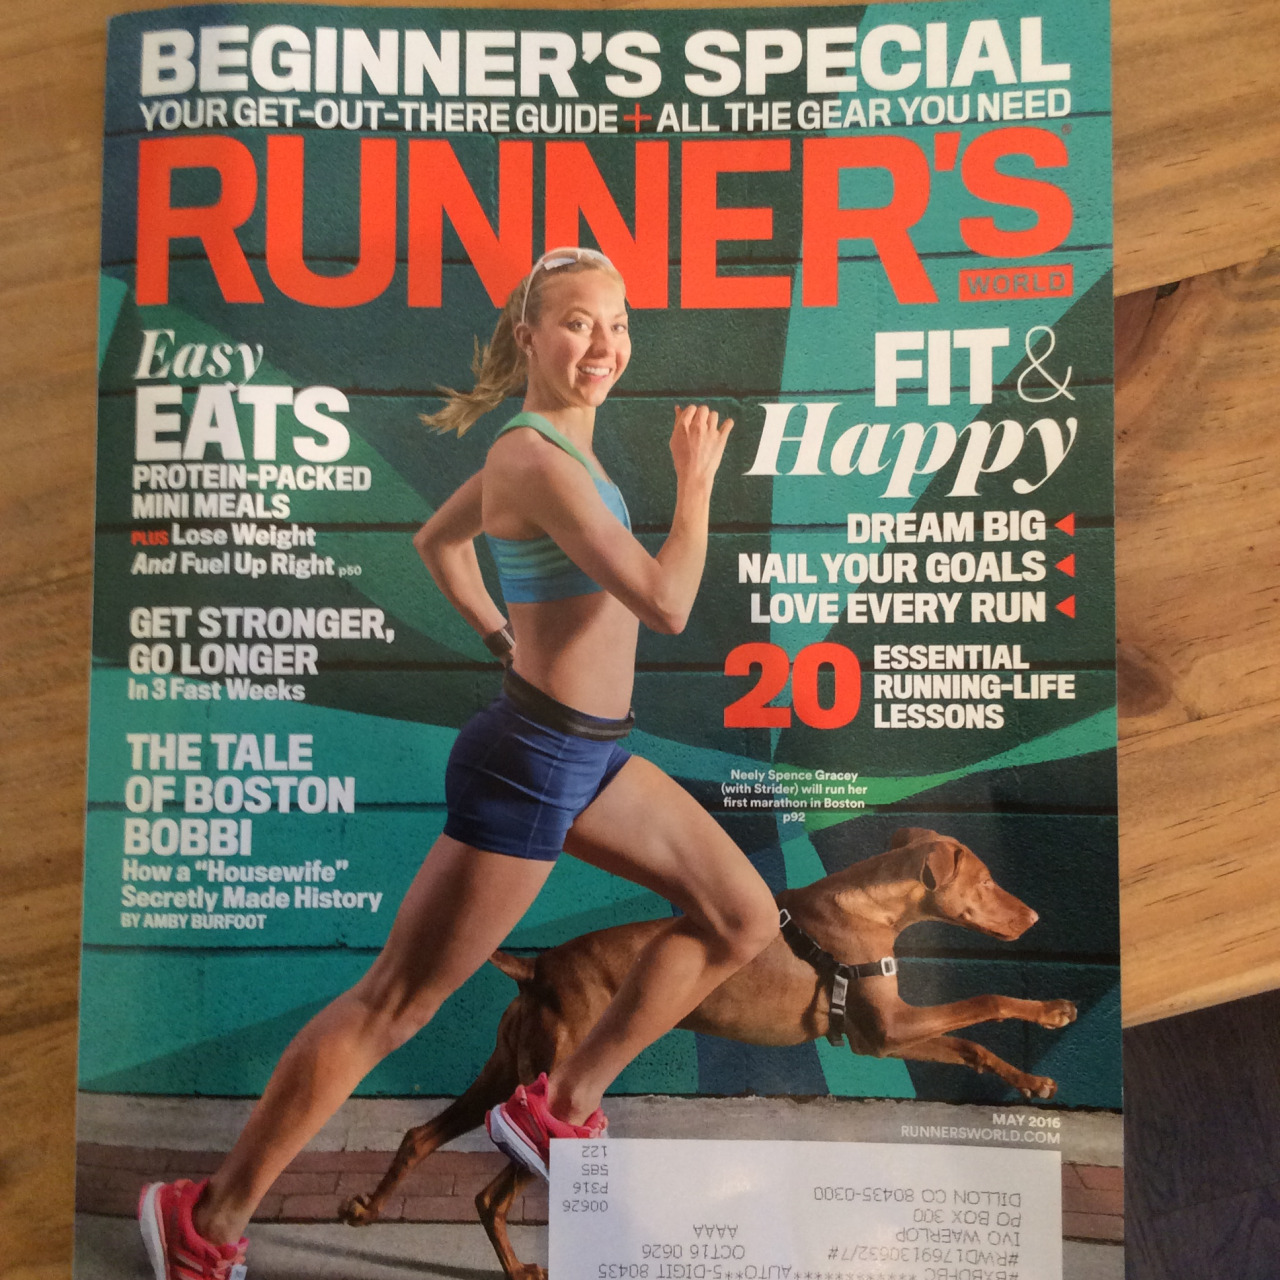 What's wrong with this picture? (Besides the fact that you probably shouldn't run with your dog on asphalt)    There's been a lot of incongruency in the media as of late. This particular gal, with your head rotation to the right is going against the harmony of neurology and physiology. Let me explain…   This particular gal, with her rotated to the right is going against the way the nervous system is designed to work.  In a post  in the last week or so (the massage cream one and  incongruent movement) we talked about tonic neck responses. When the head is rotated to one side, that upper and lower extremity should extend while the contralateral side should flex. This poor gal is fighting her own neurology!     Also note that she really doesn't have that much hip extension on the right and increases her lumbar lordosis to compensate. Gee whizz. You'd a thought they would have done better…   So much for the photo op : -)